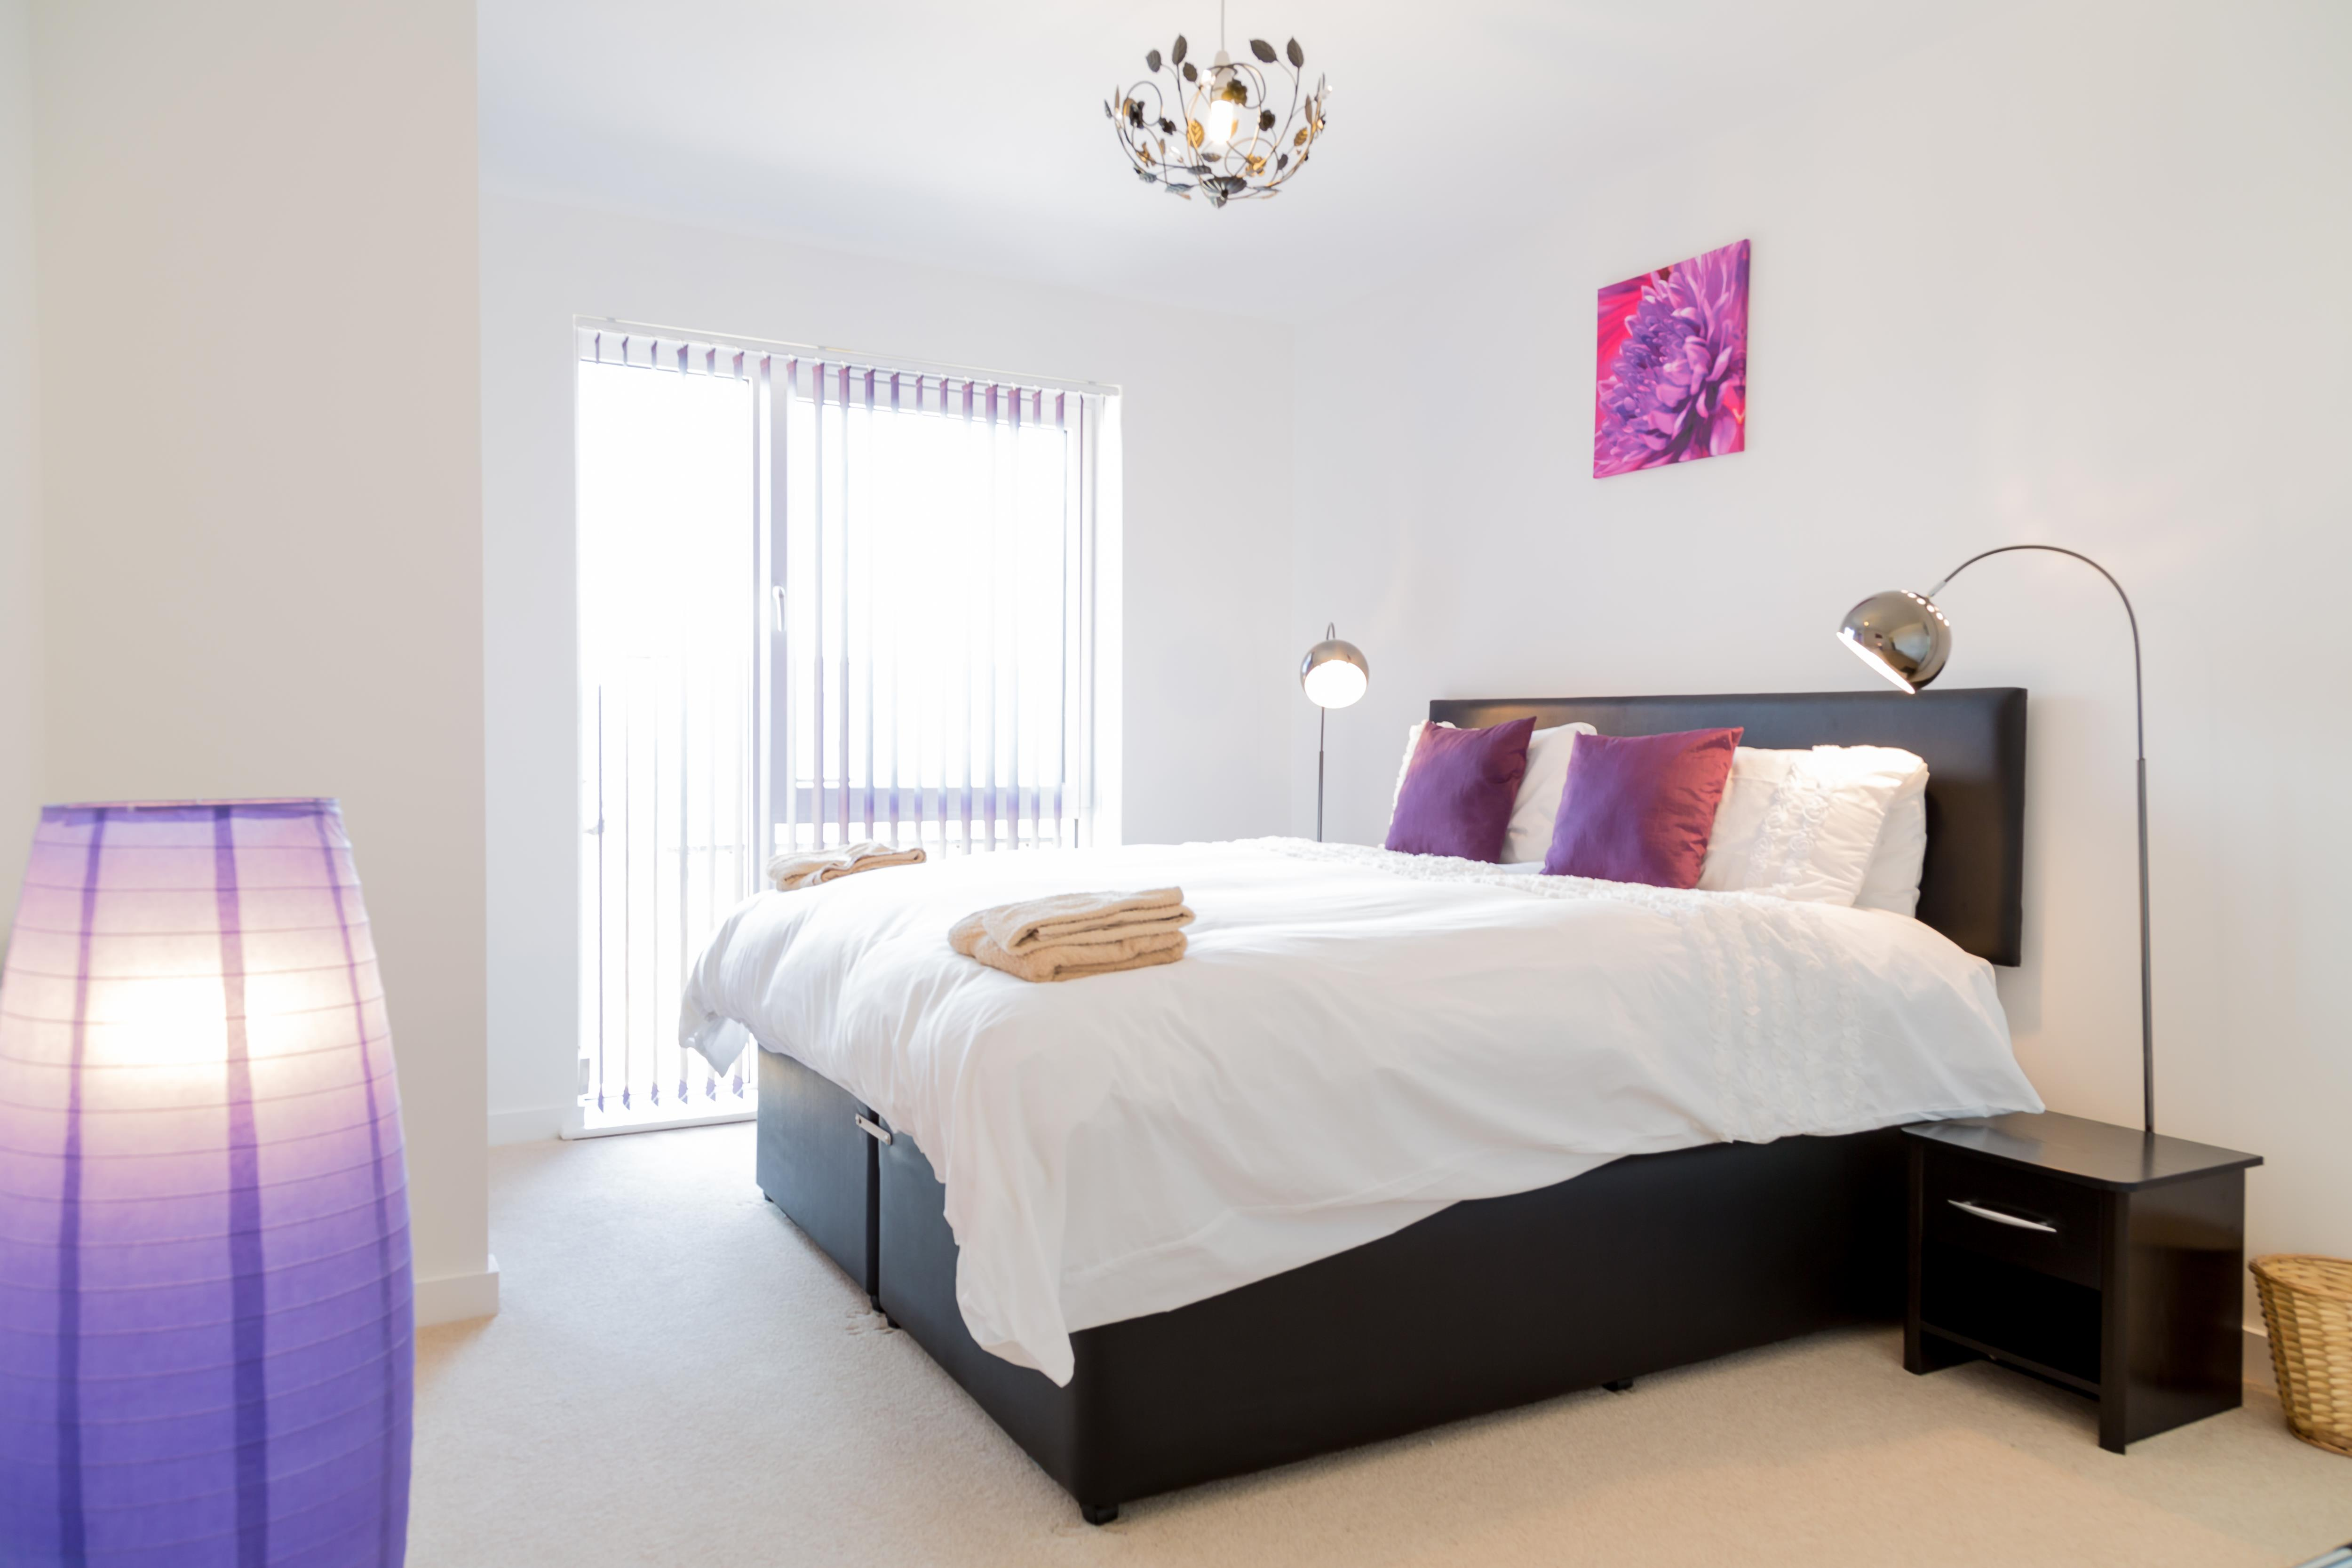 Self Catering Apartments Cambridge - Luxury Self Catering ...